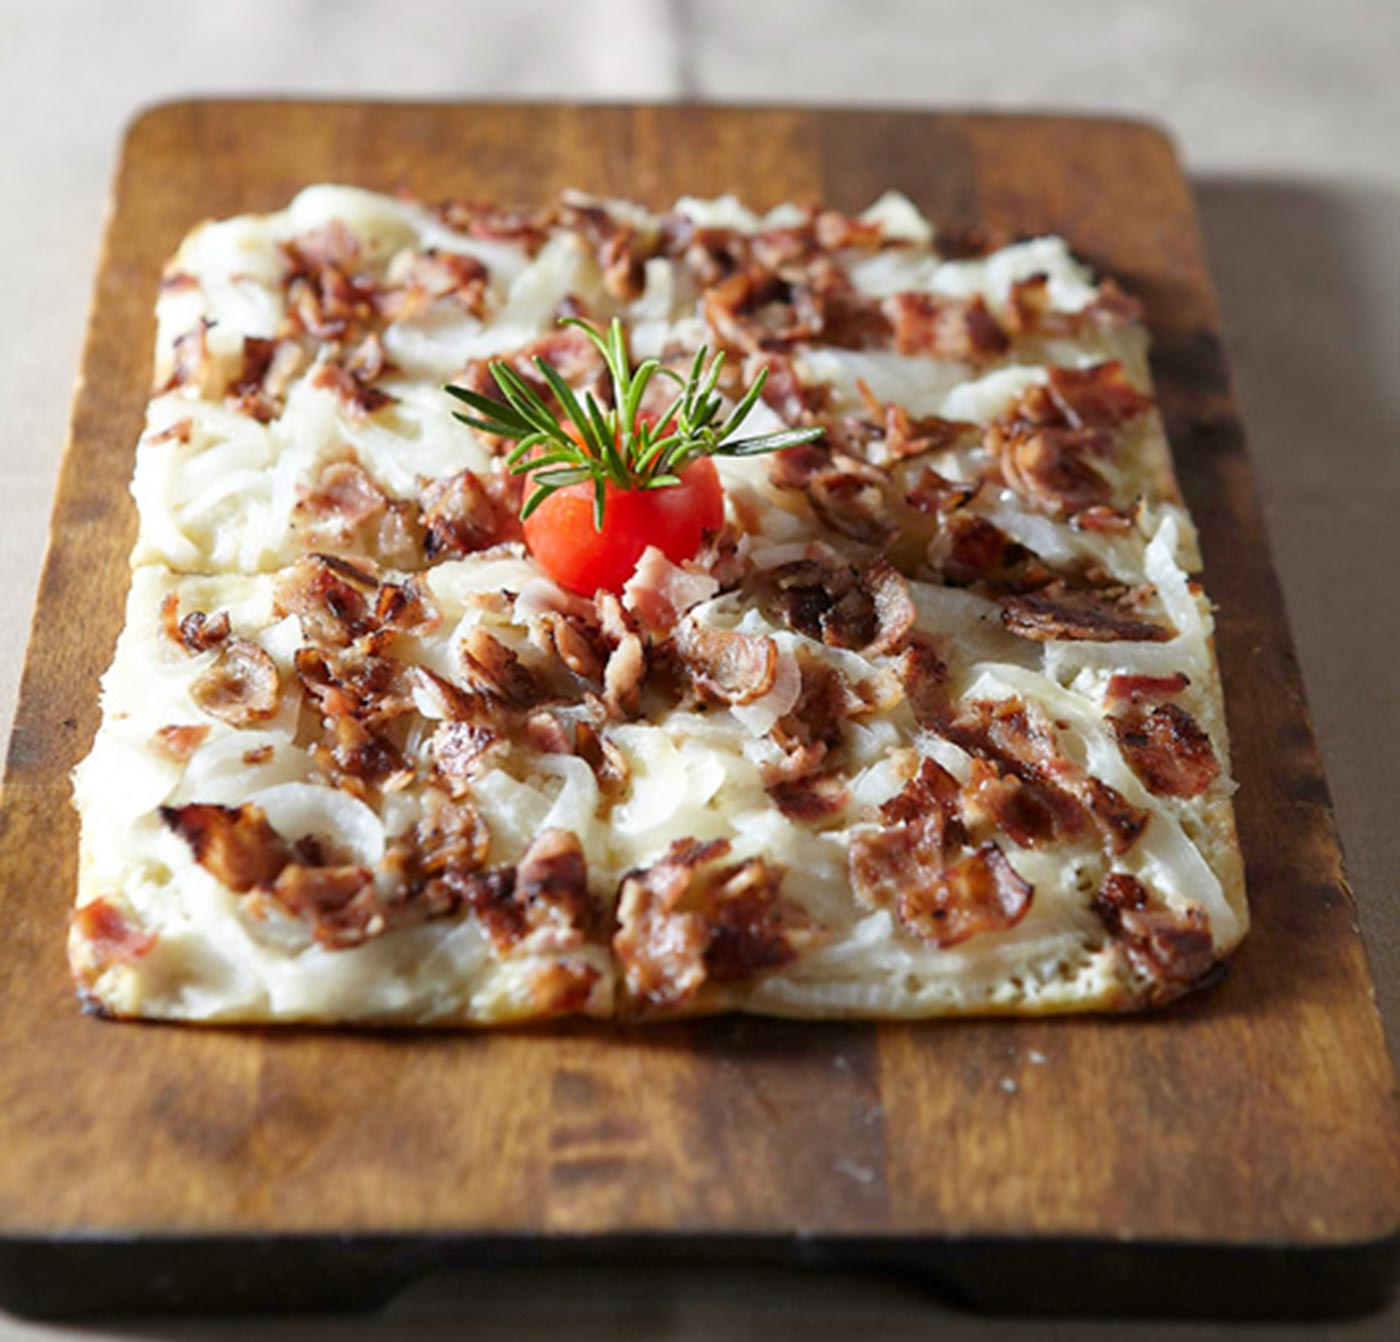 BEST DELIVERY FOOD |Tarte flambée - Τάρτa φλαμπέ fromage blanc, munster, κρεμμύδι, καπνιστό μπέικον